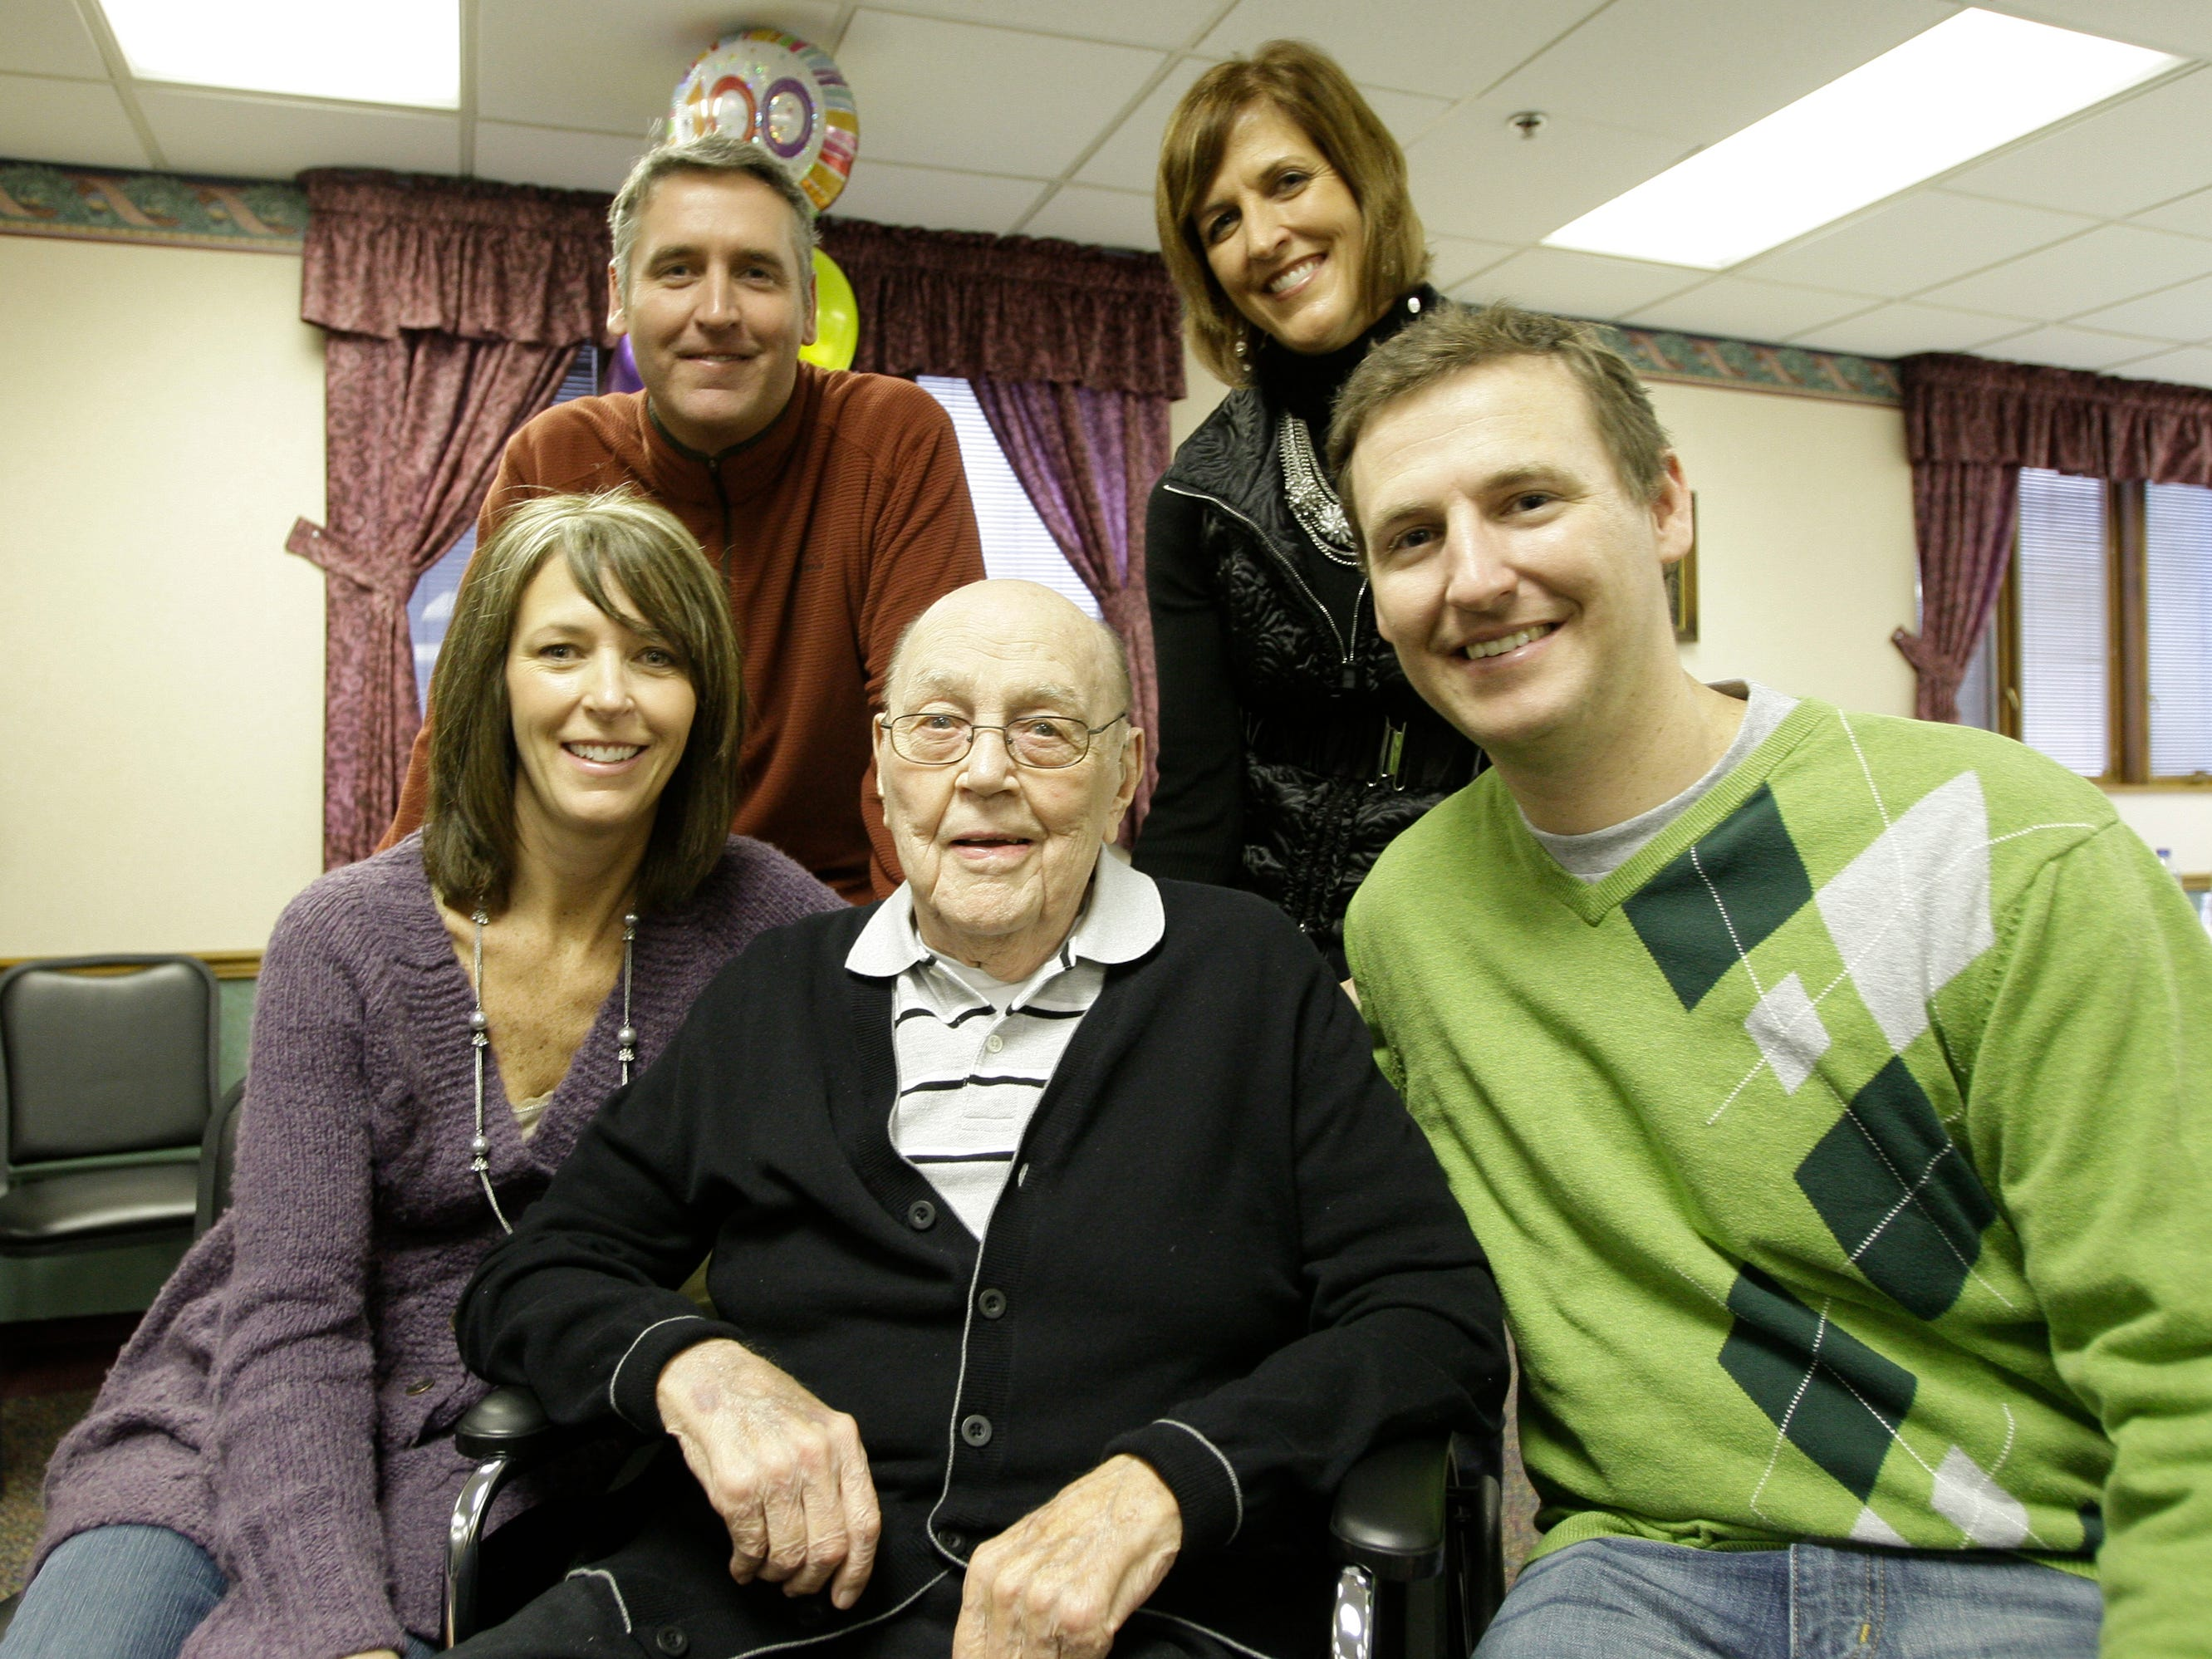 Sheboygan Redskins coach Frank Zummach sits in a wheelchair  while posing with his family Saturday January 28, 2011 during his 100th birthday party at the Sheboygan Senior Community, in Sheboygan, Wis. About 35 family members came to the event.